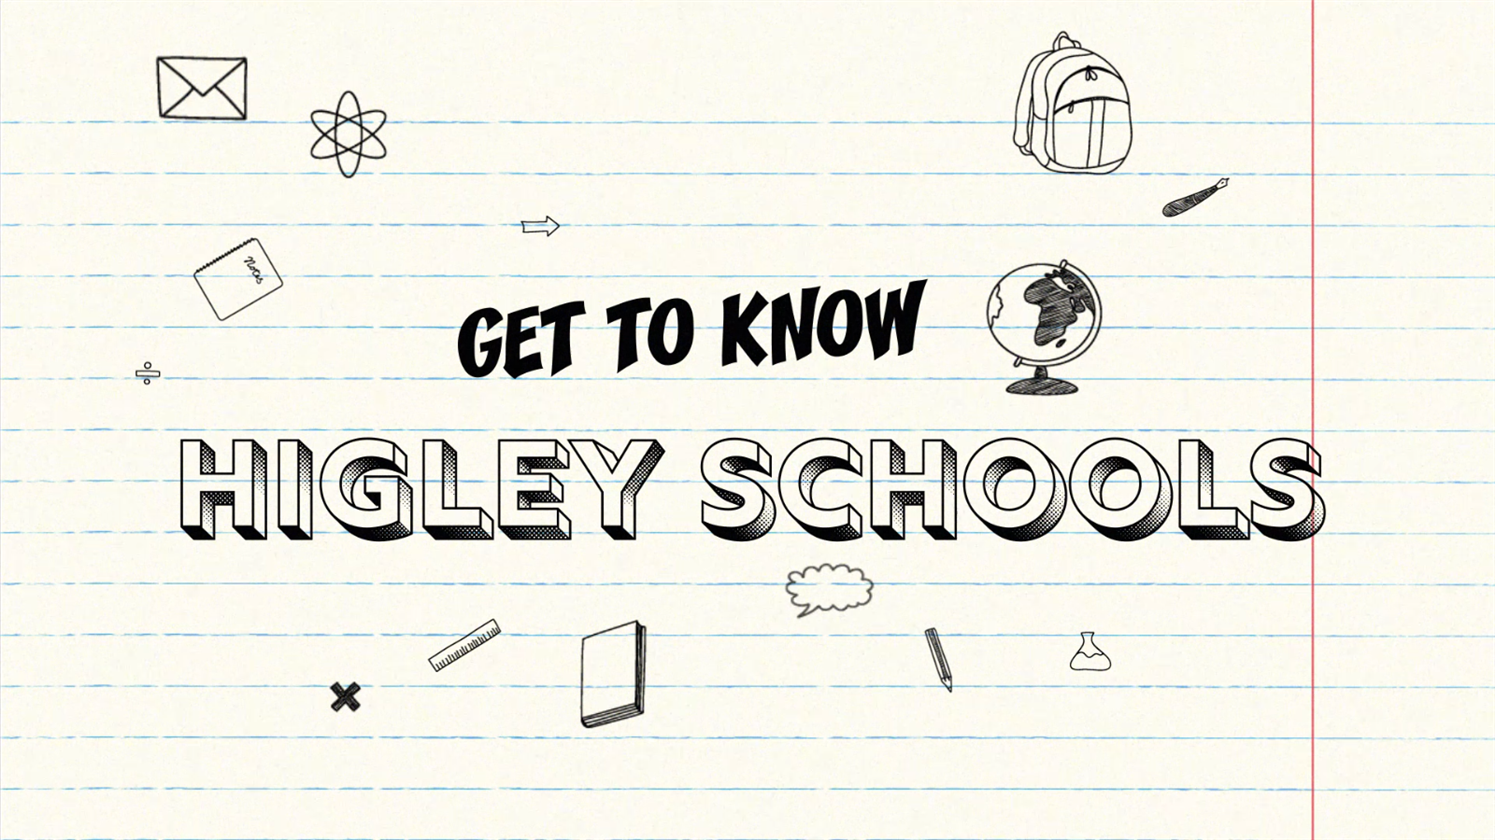 Higley Unified School District / Higley Unified School District